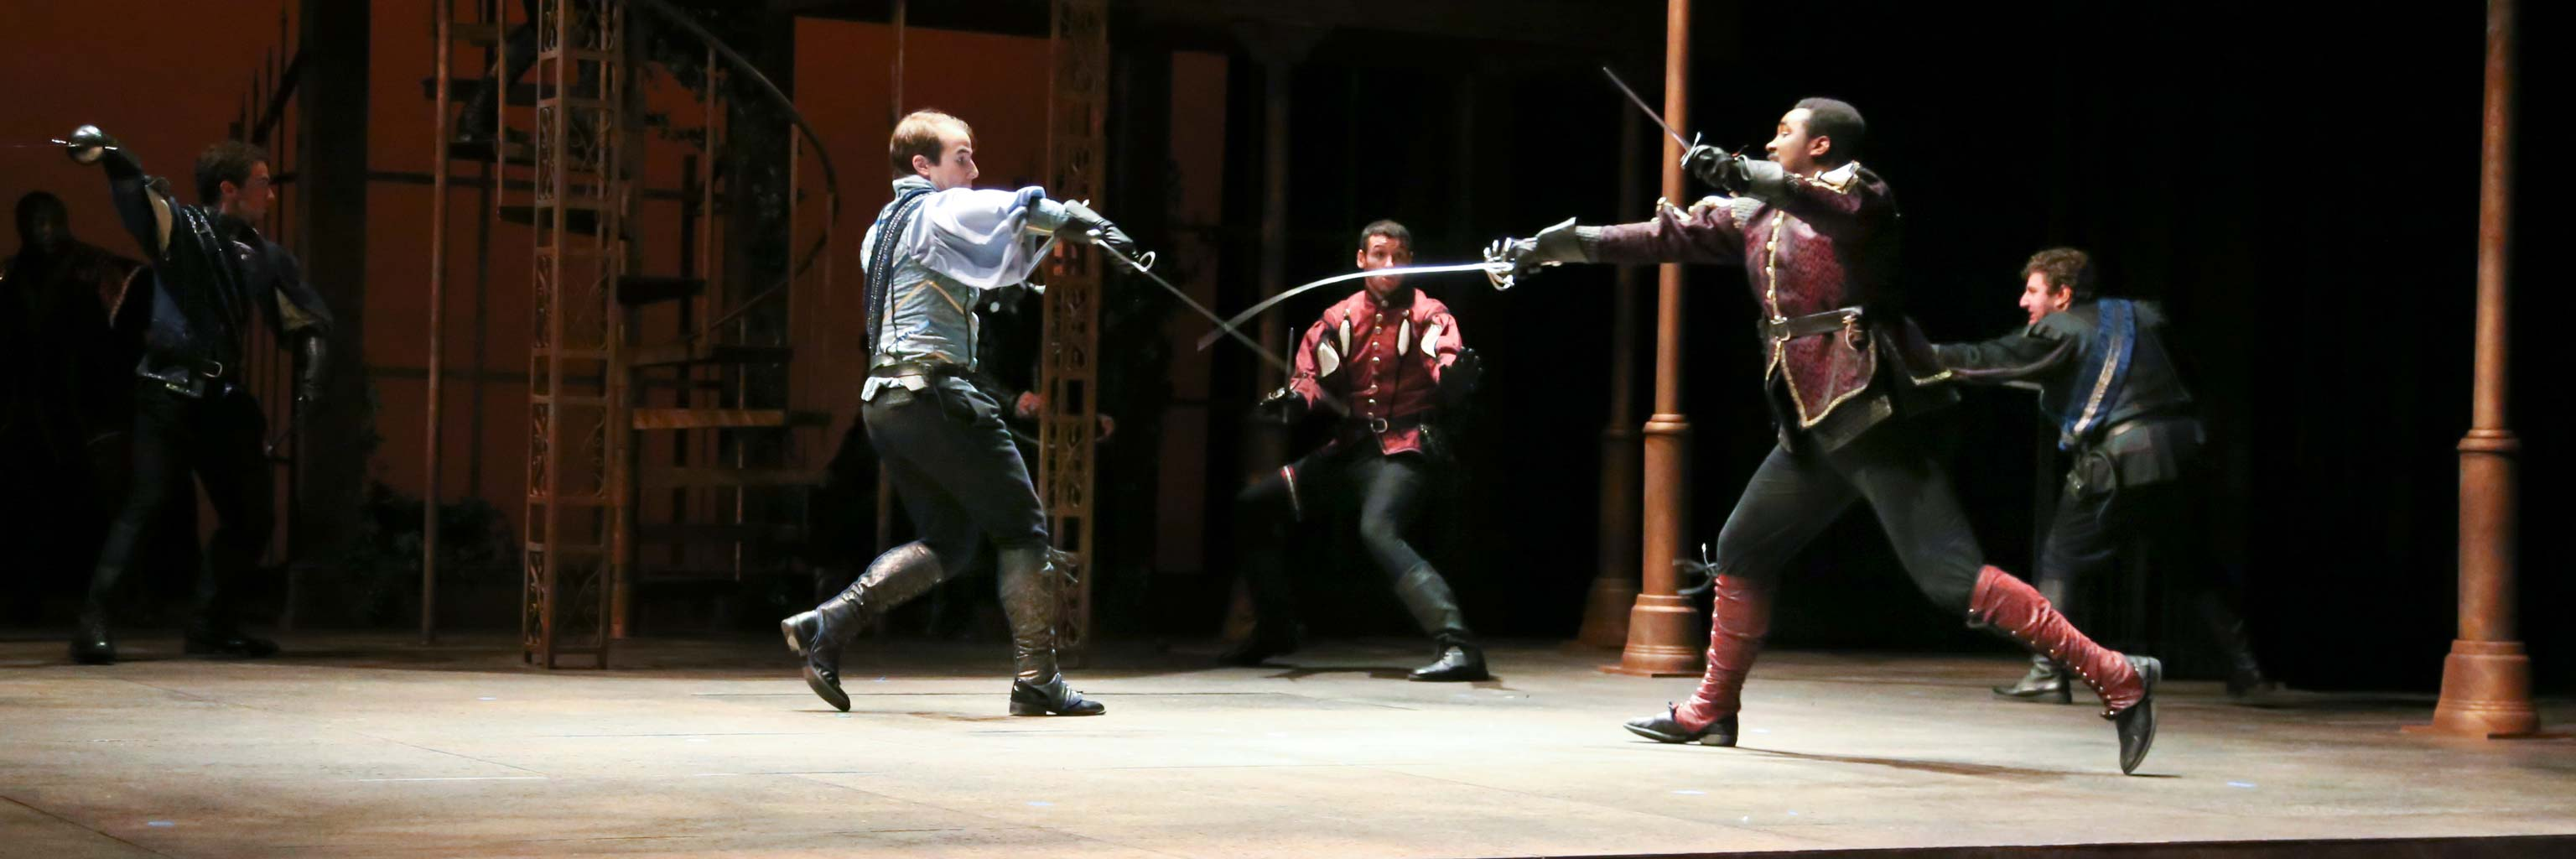 sword fighting during a performance